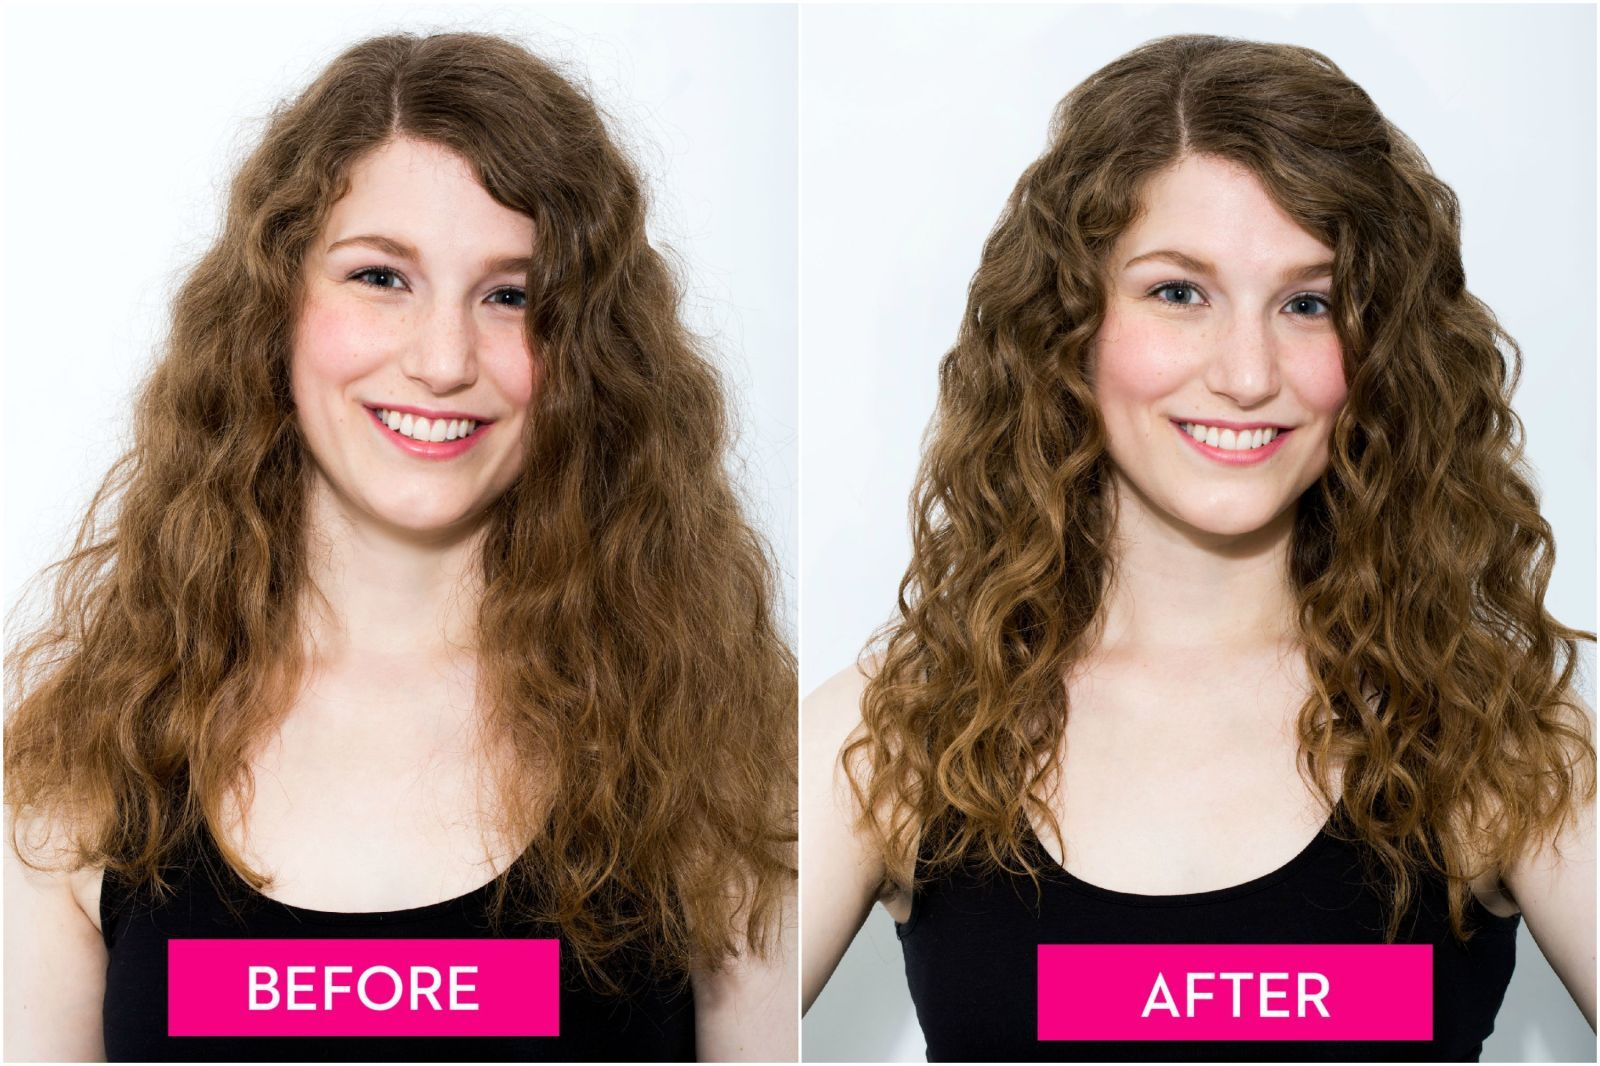 How To Get Perfect Natural Curls Using Just A Diffuser Curly Hair Styles Hair Diffuser Curly Hair Photos